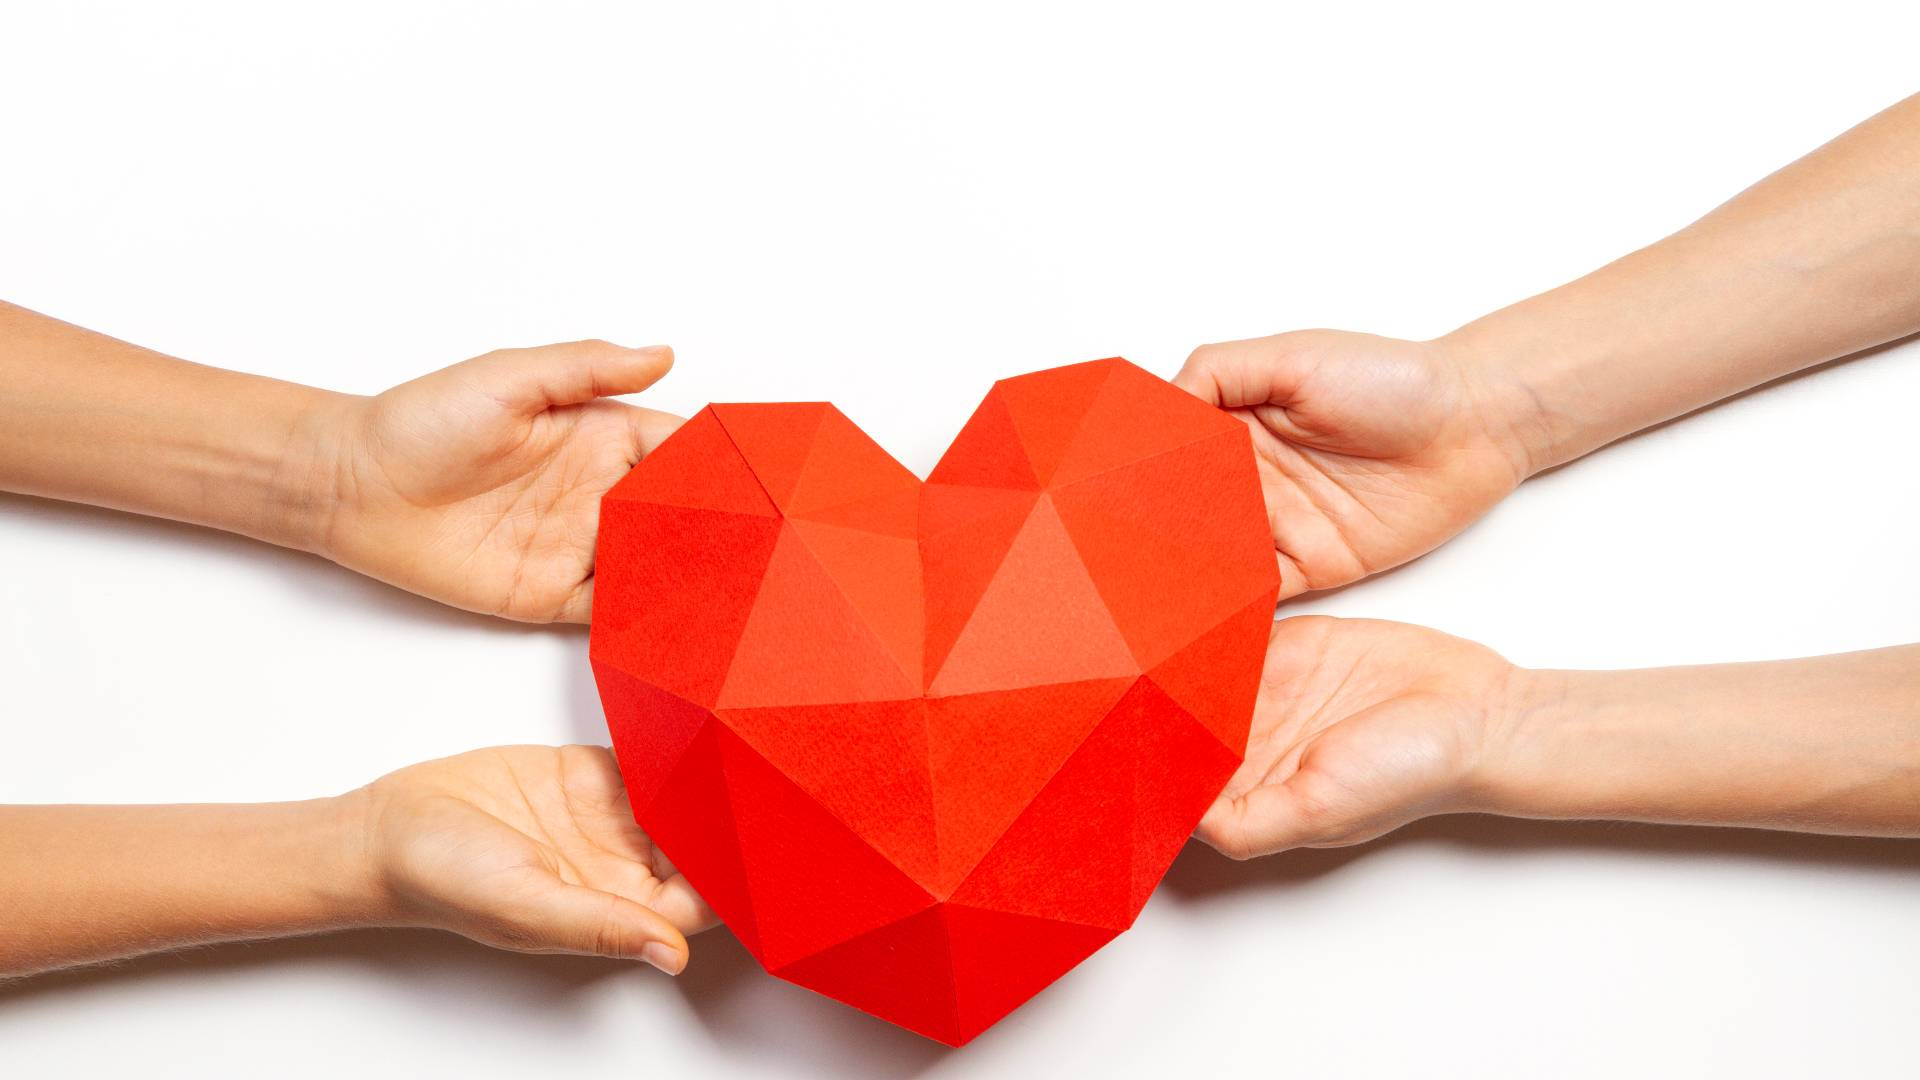 hands holding heart image